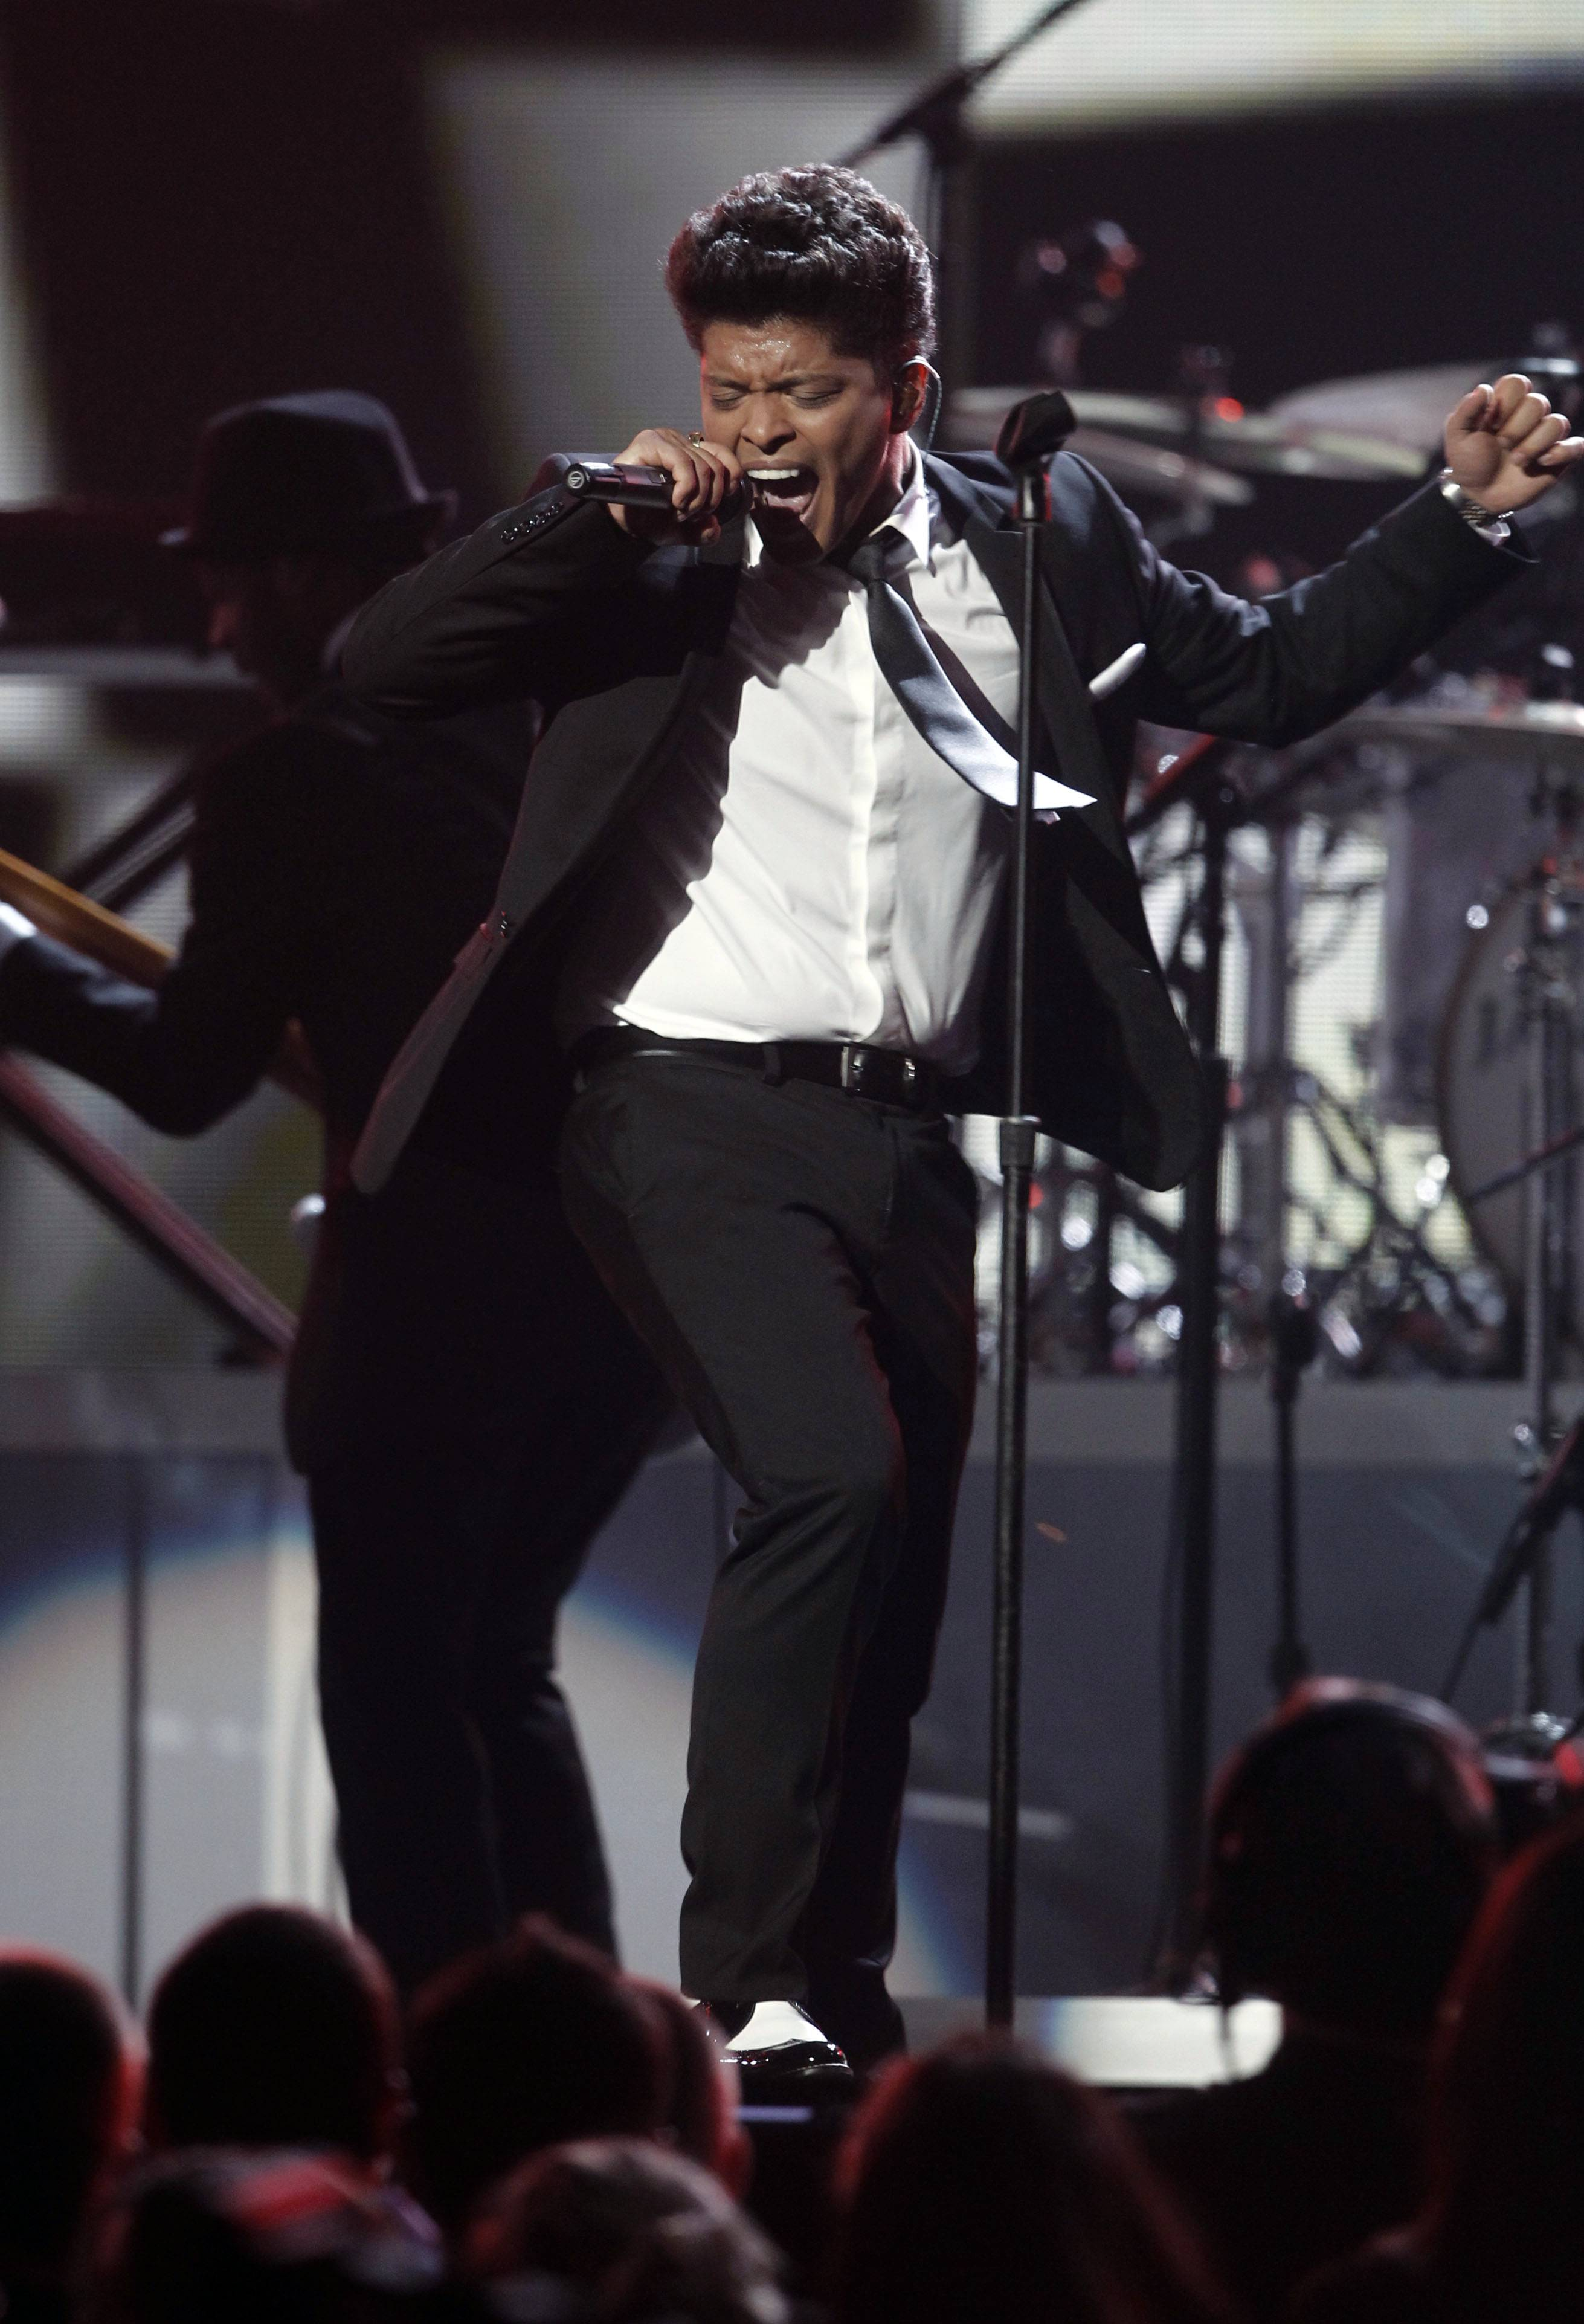 Bruno Mars performs at the 53rd annual Grammy Awards on Sunday, Feb. 13, 2011, in Los Angeles. (AP Photo/Matt Sayles)